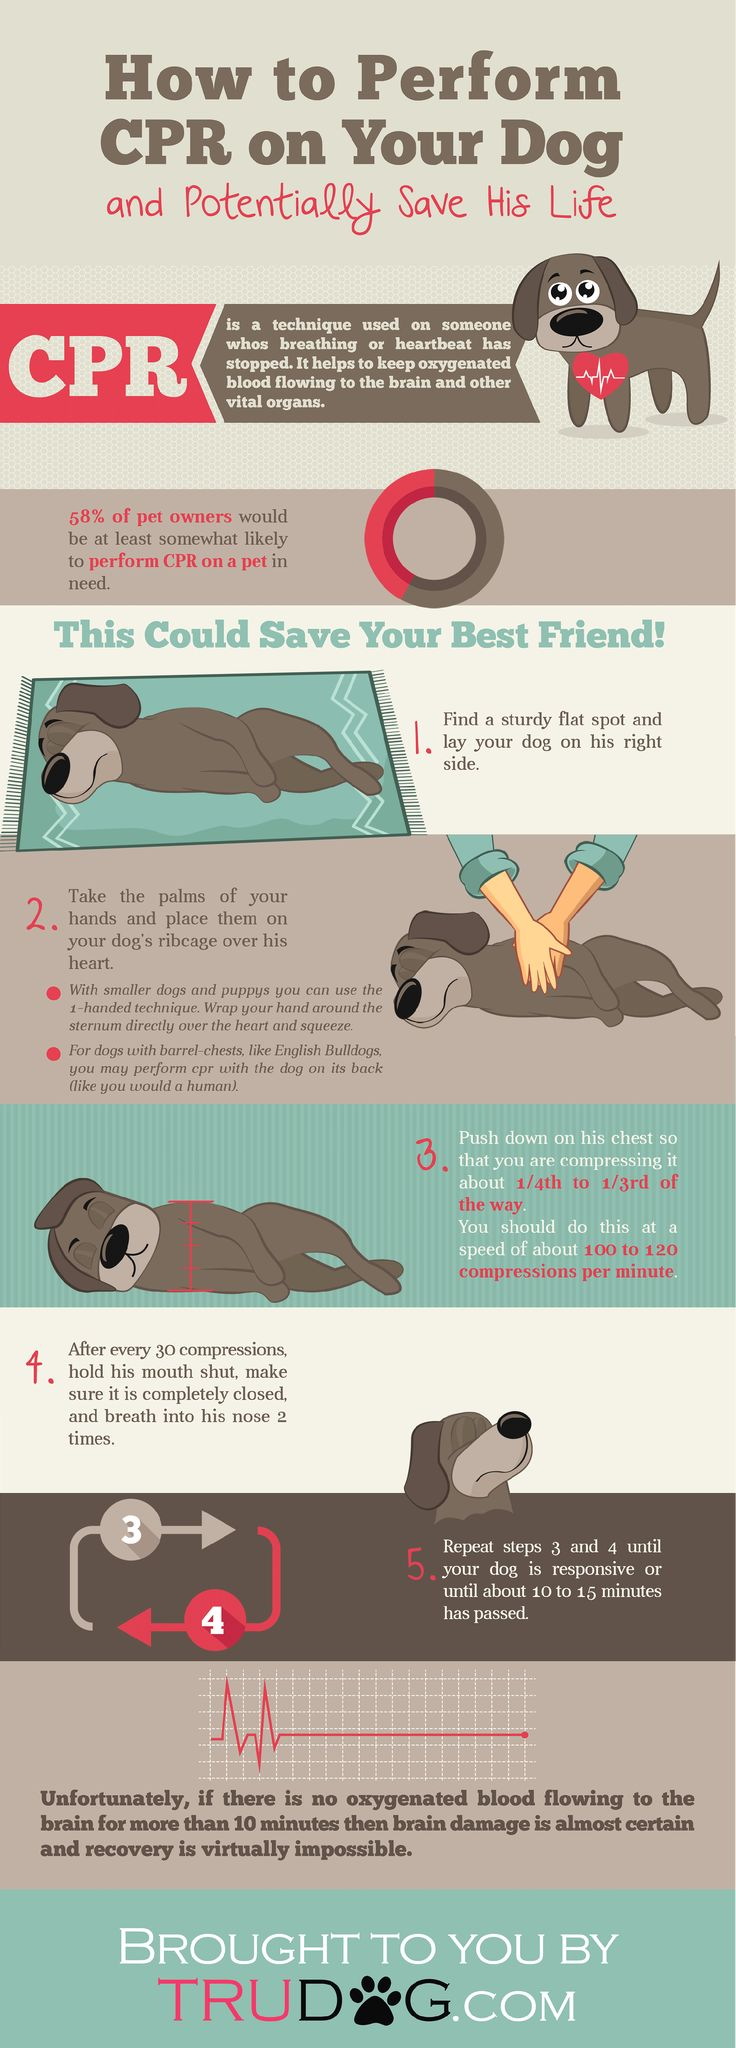 [Infographic] How to Perform CPR on Your Dog #doginfographic